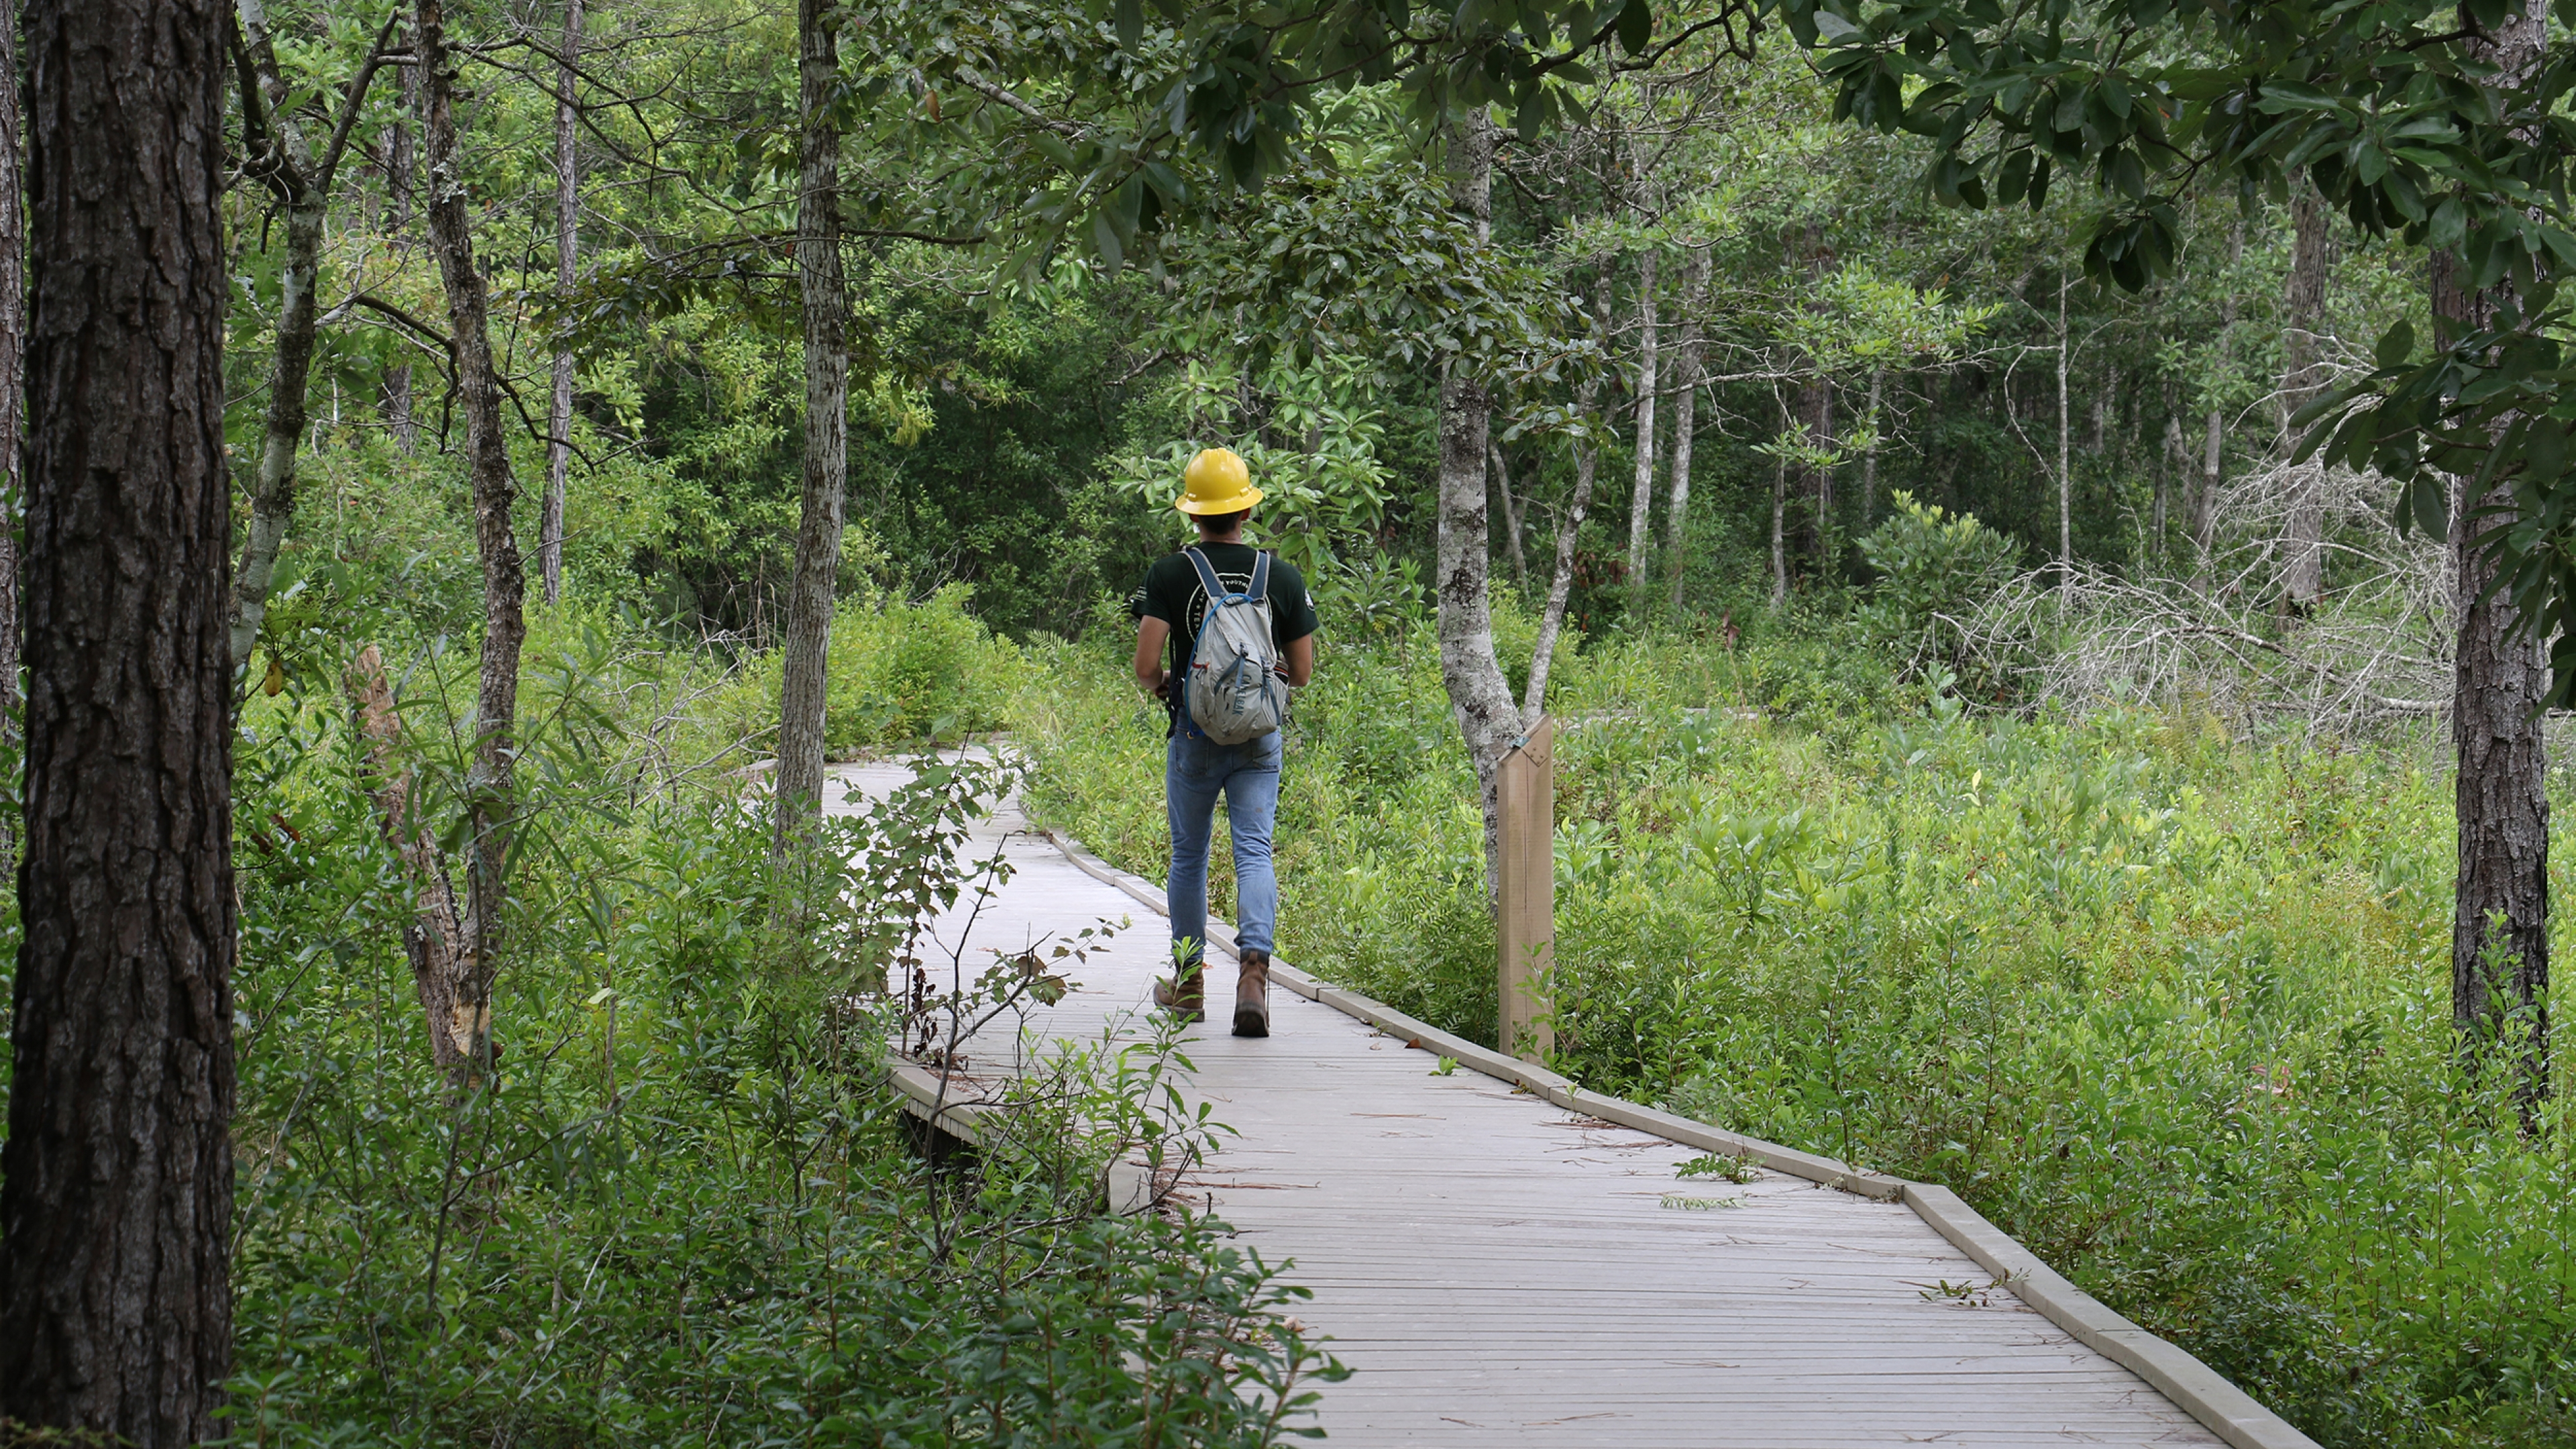 Service corps member walks on an elevated wooden path through a heavily forested area, with a yellow hard hat on